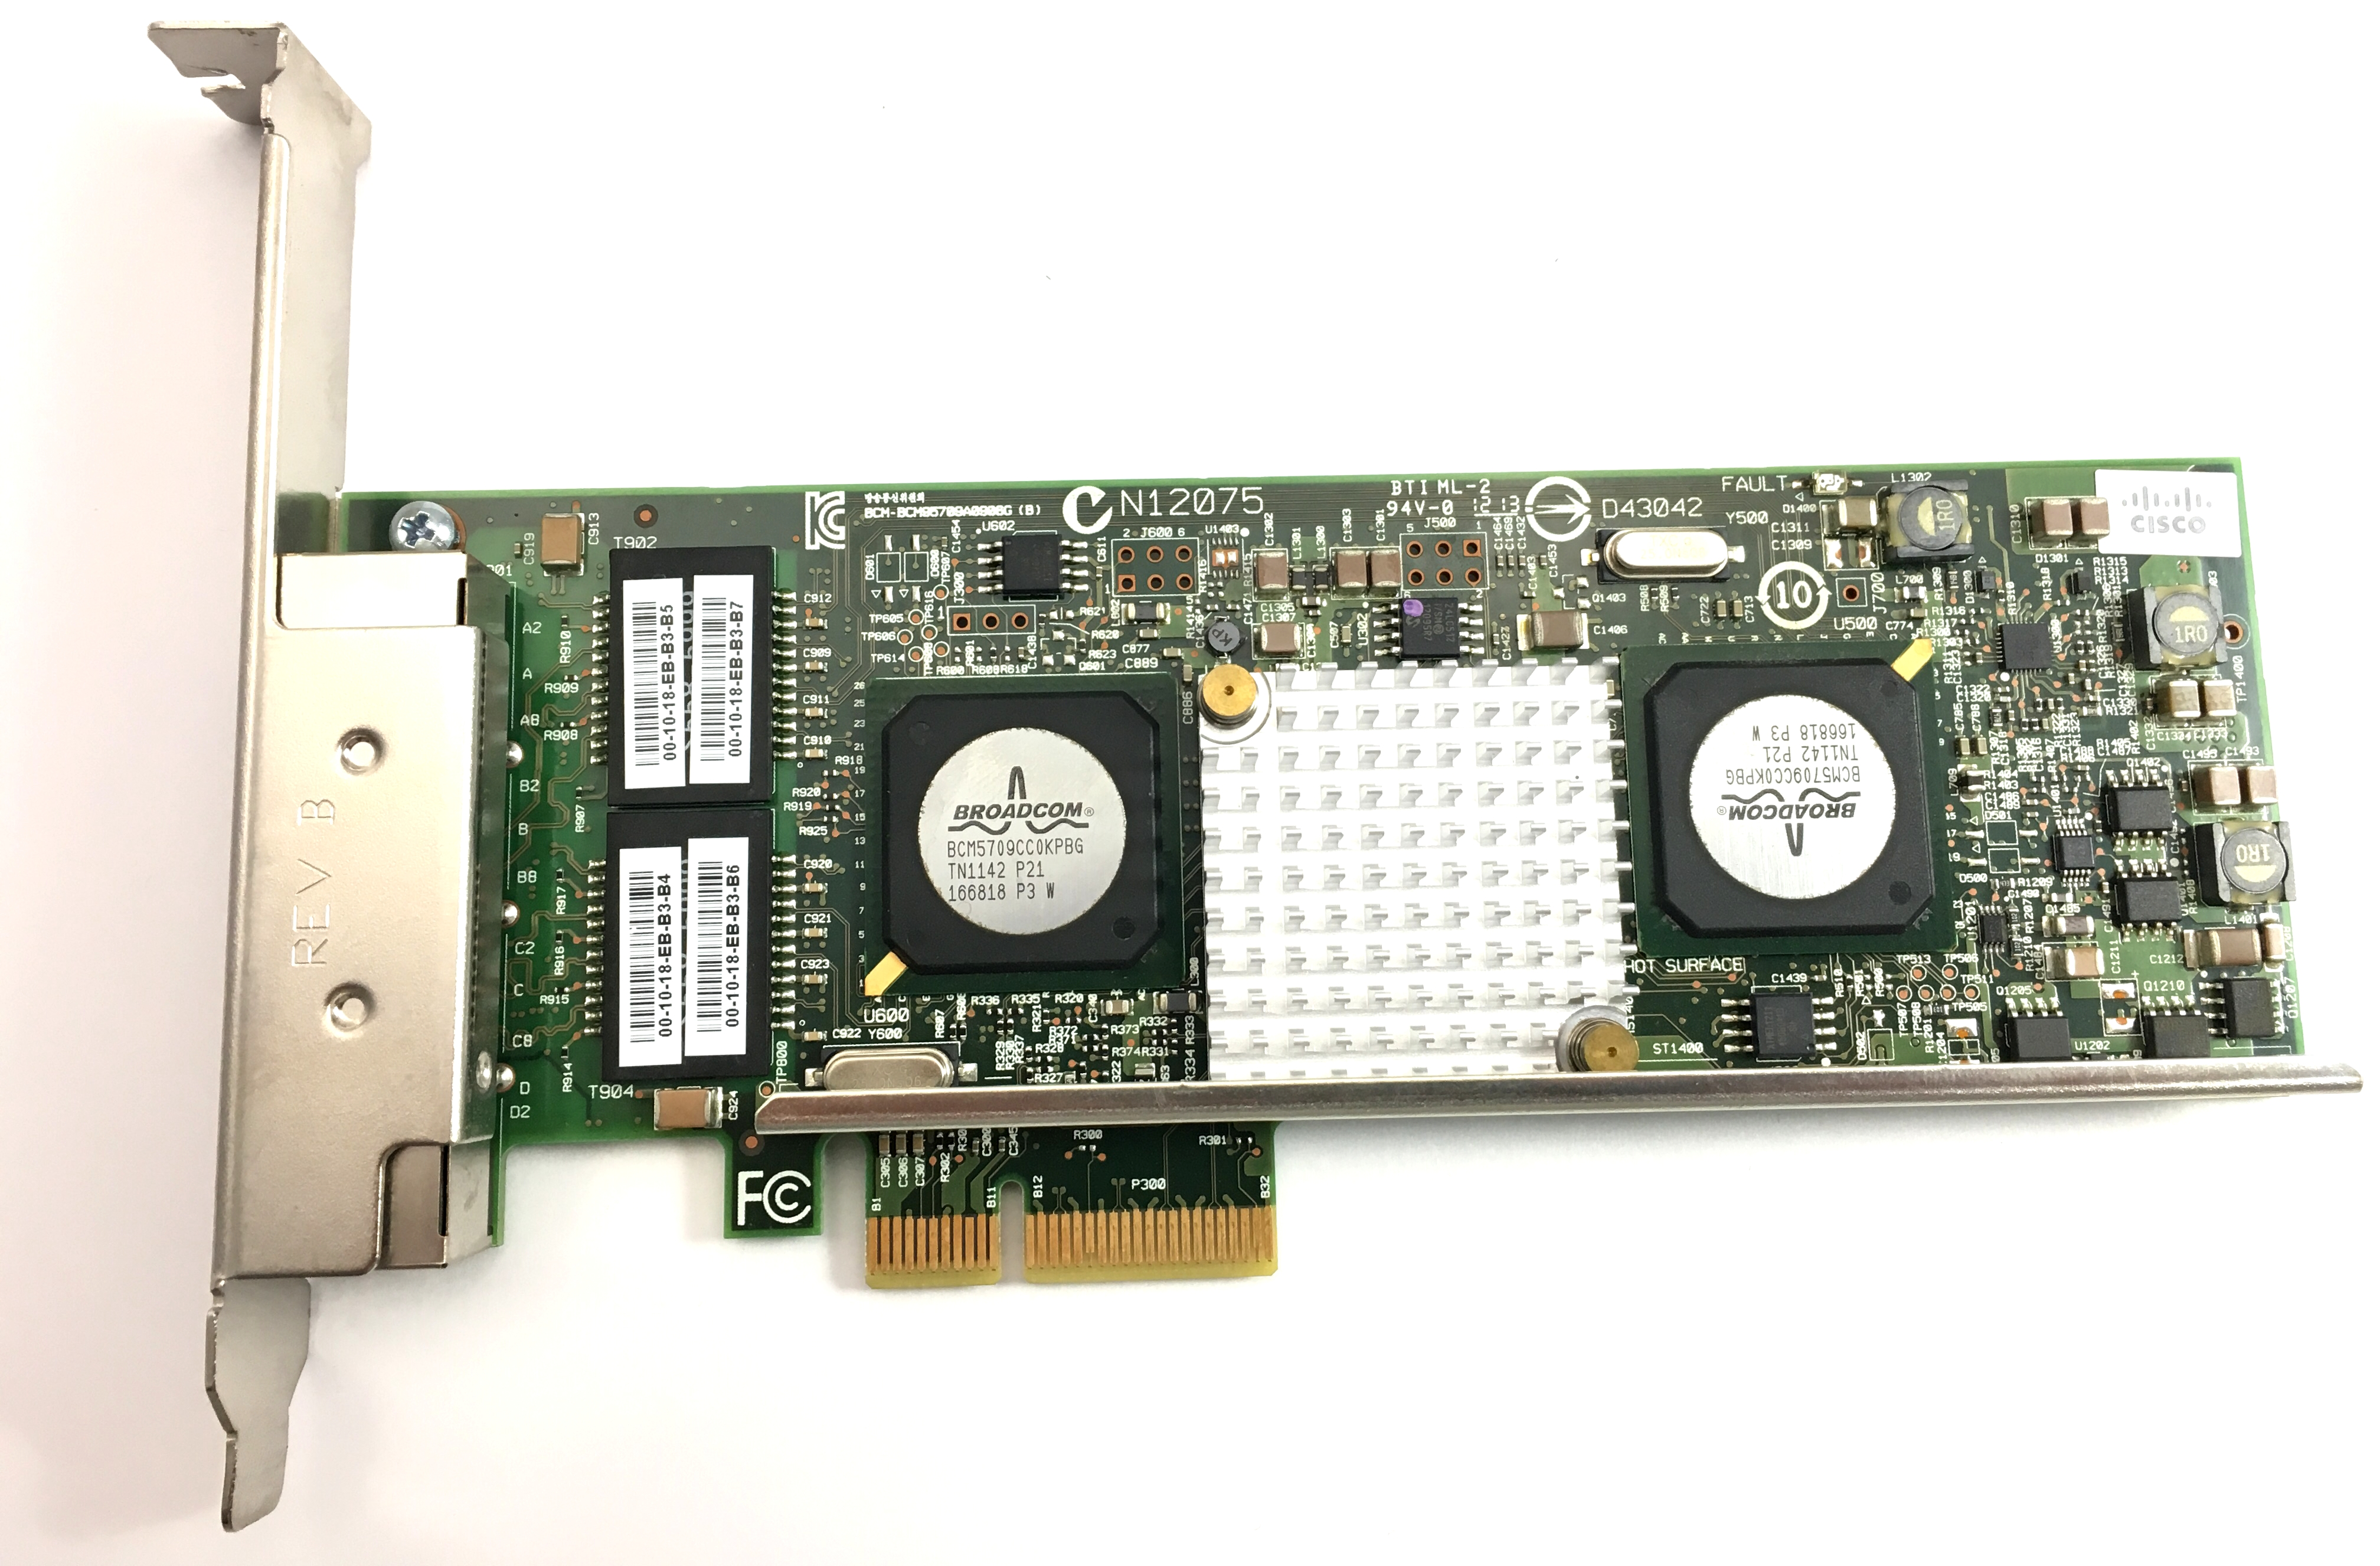 Cisco Broadcom Netxtreme II 5709 Quad-Port Ethernet PCI-E Adapter Card (N2XX-ABPCI03-M3)